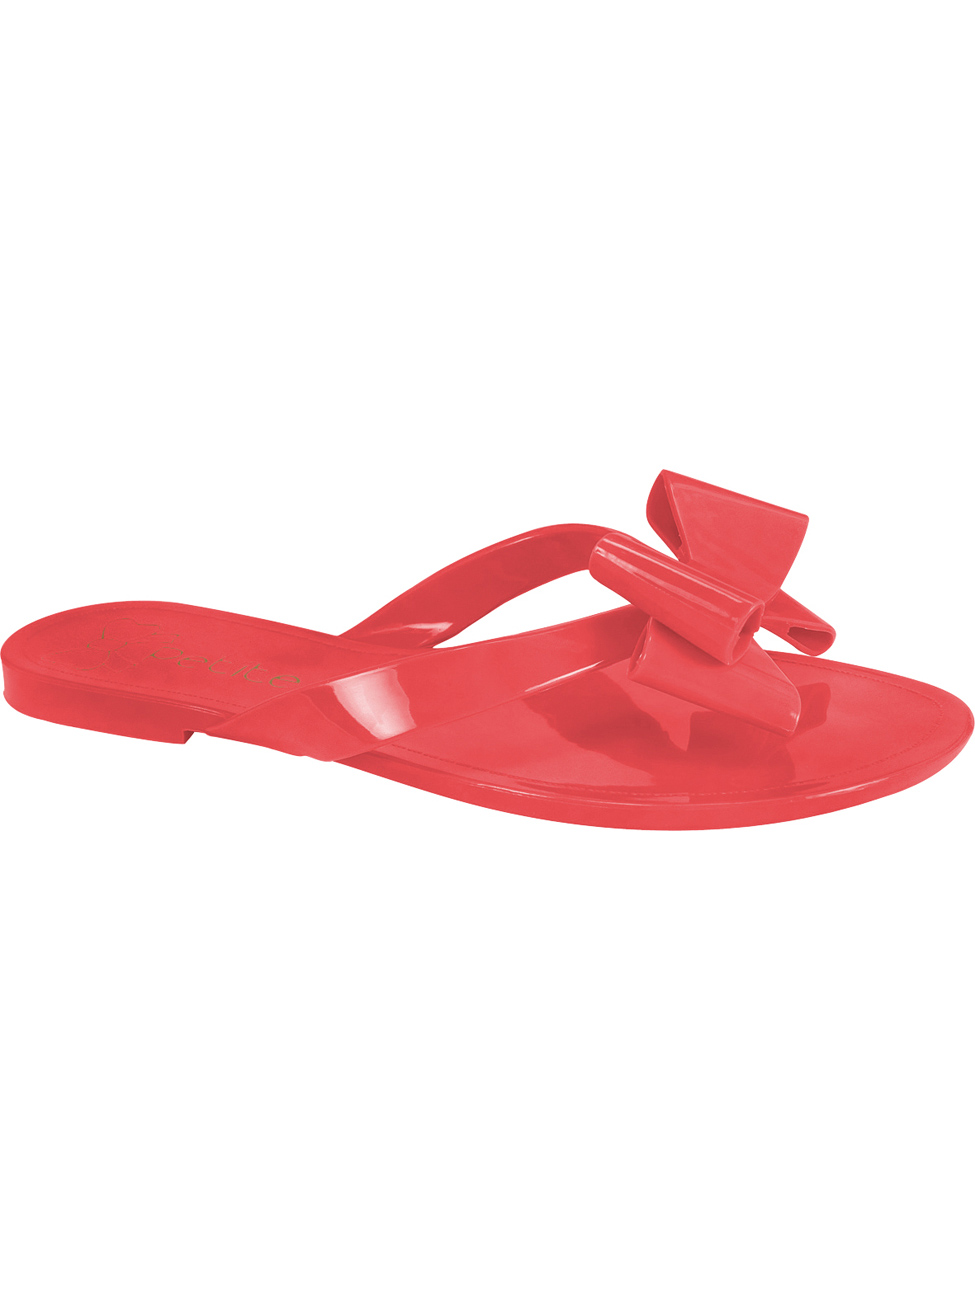 Red bow flip-flops